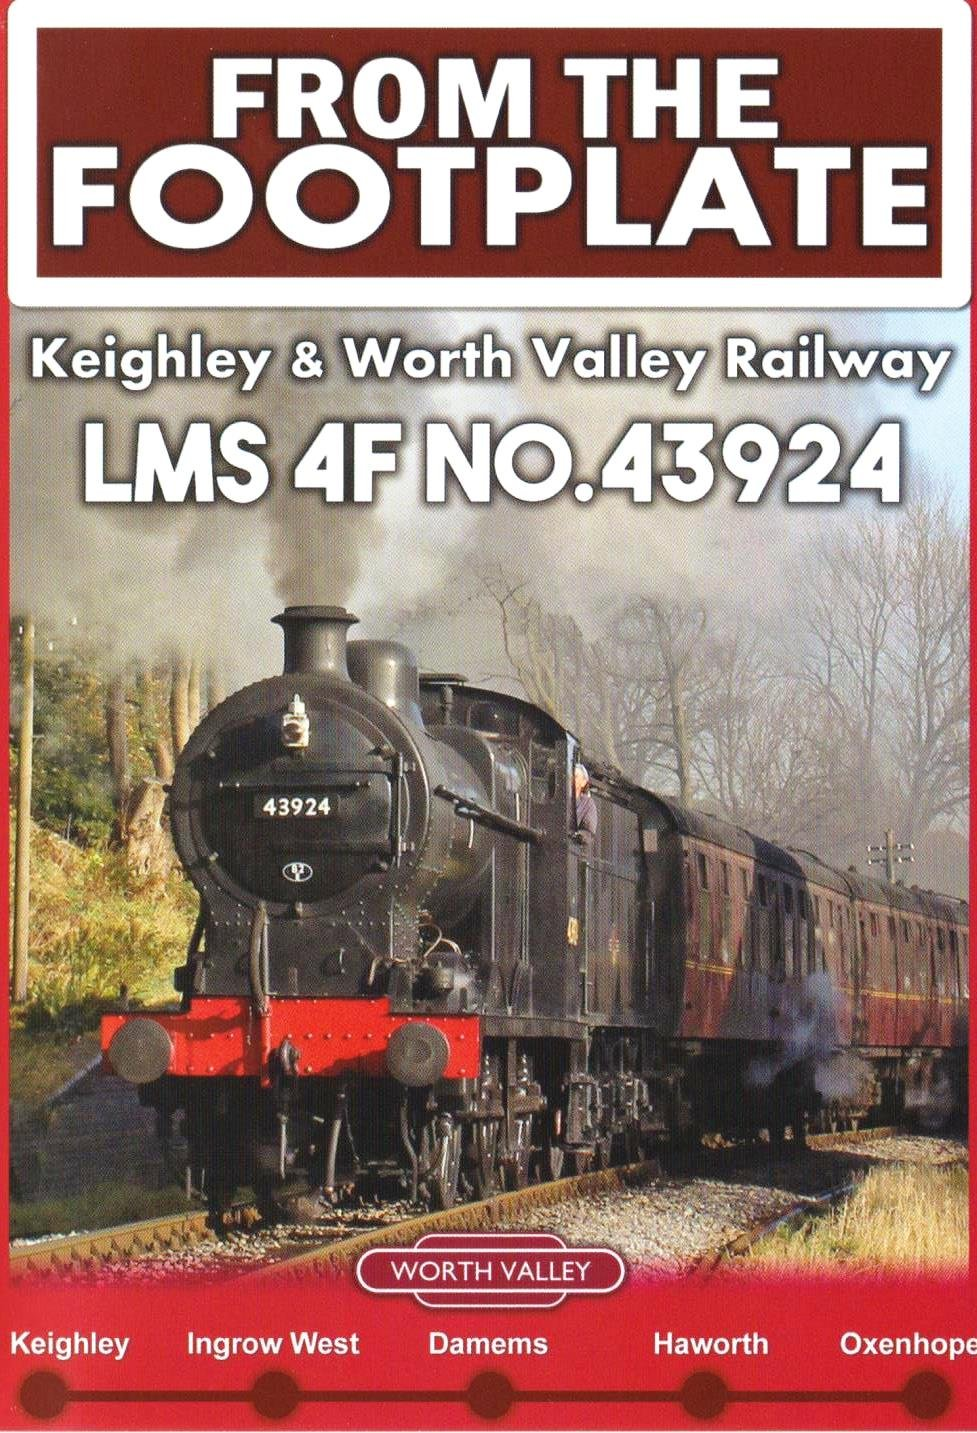 From the Footplate Dvd: Keighley & Worth Valley Railway LMS 4F No. 43924:  Amazon.co.uk: DVD & Blu-ray